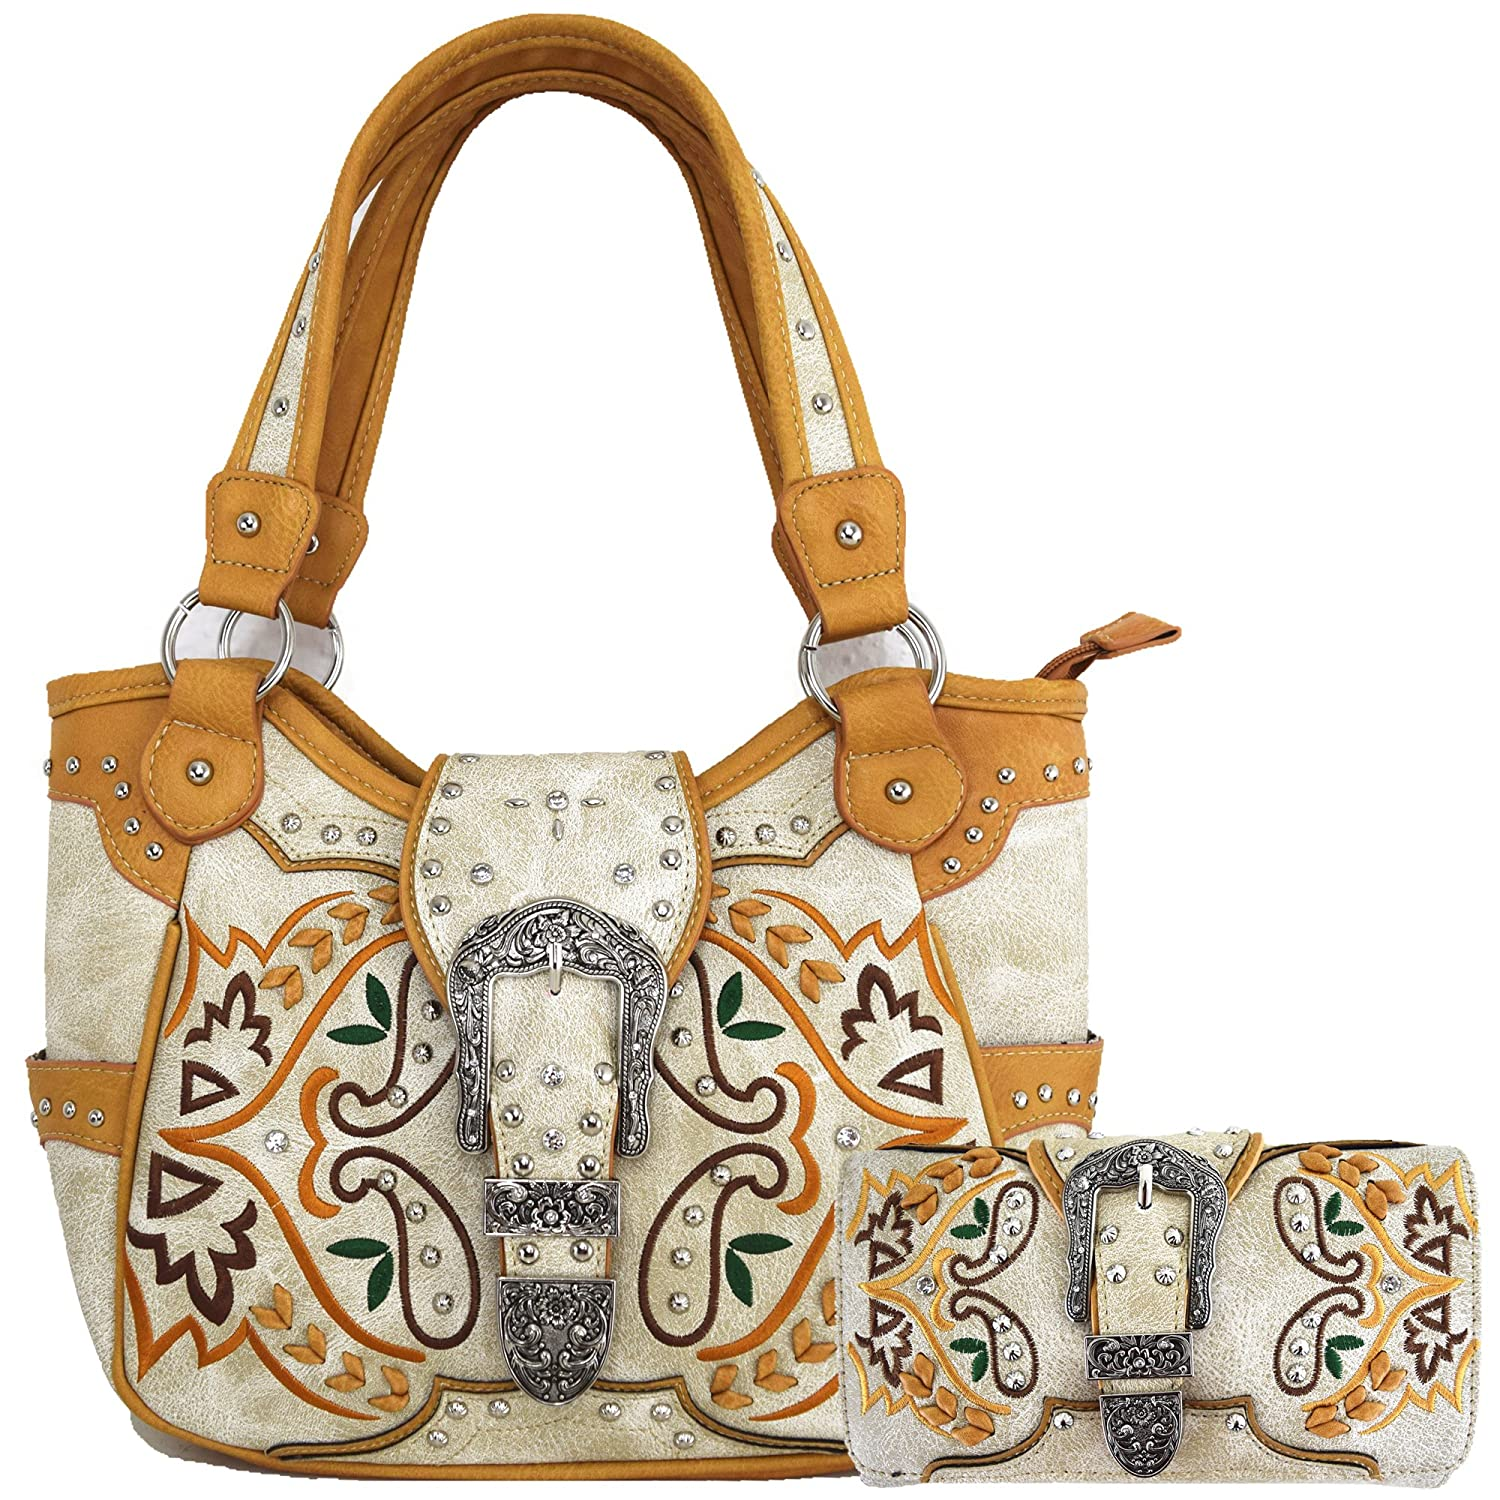 50c511c9fce7 Western Style Buckle Country Purse Concealed Carry Handbag Embroidery Women Shoulder  Bag Wallet Set Beige  Handbags  Amazon.com